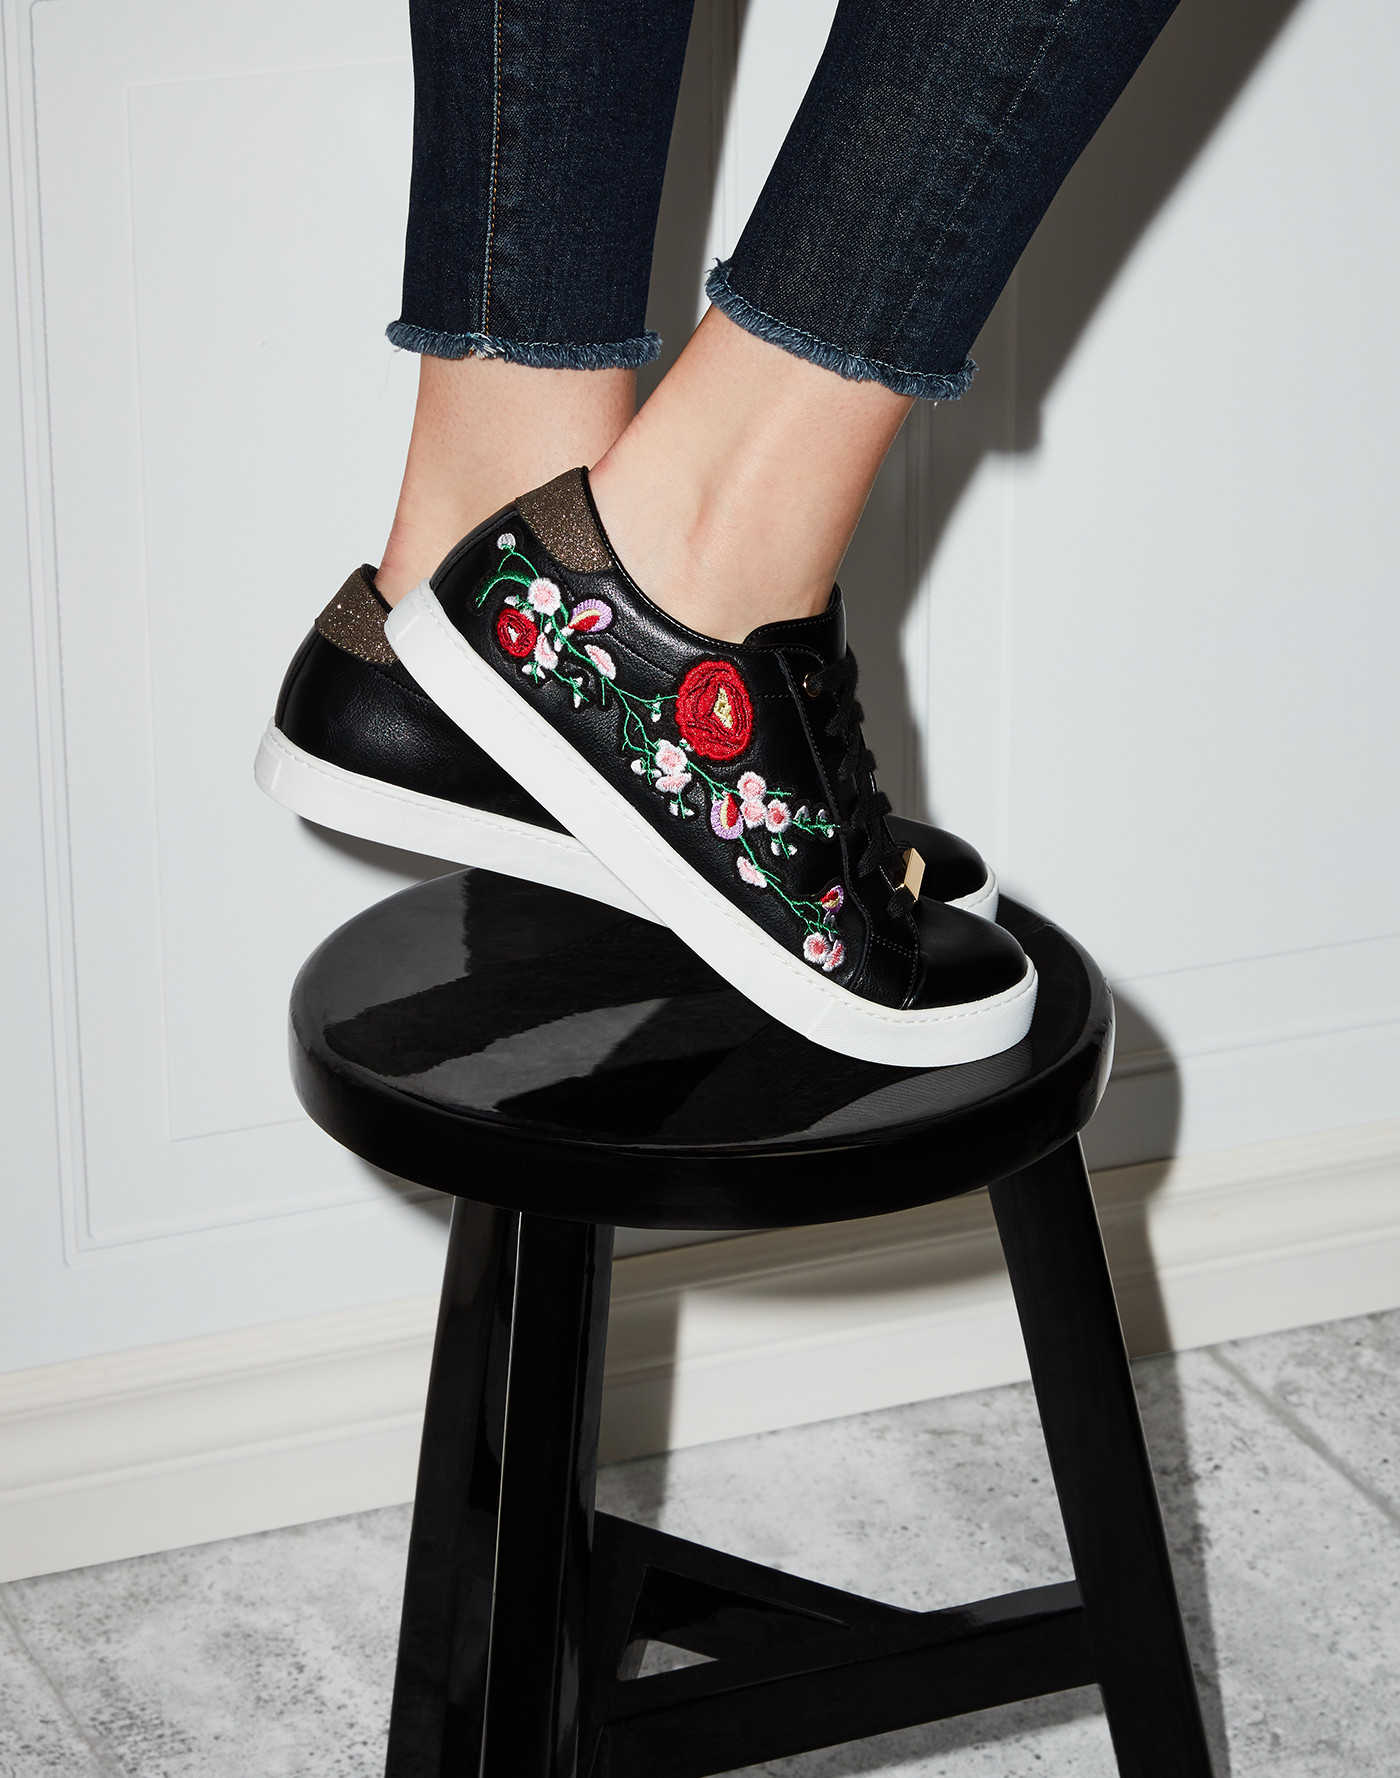 aldo shoes coupon code 15% 2018 crossovers nba youtube